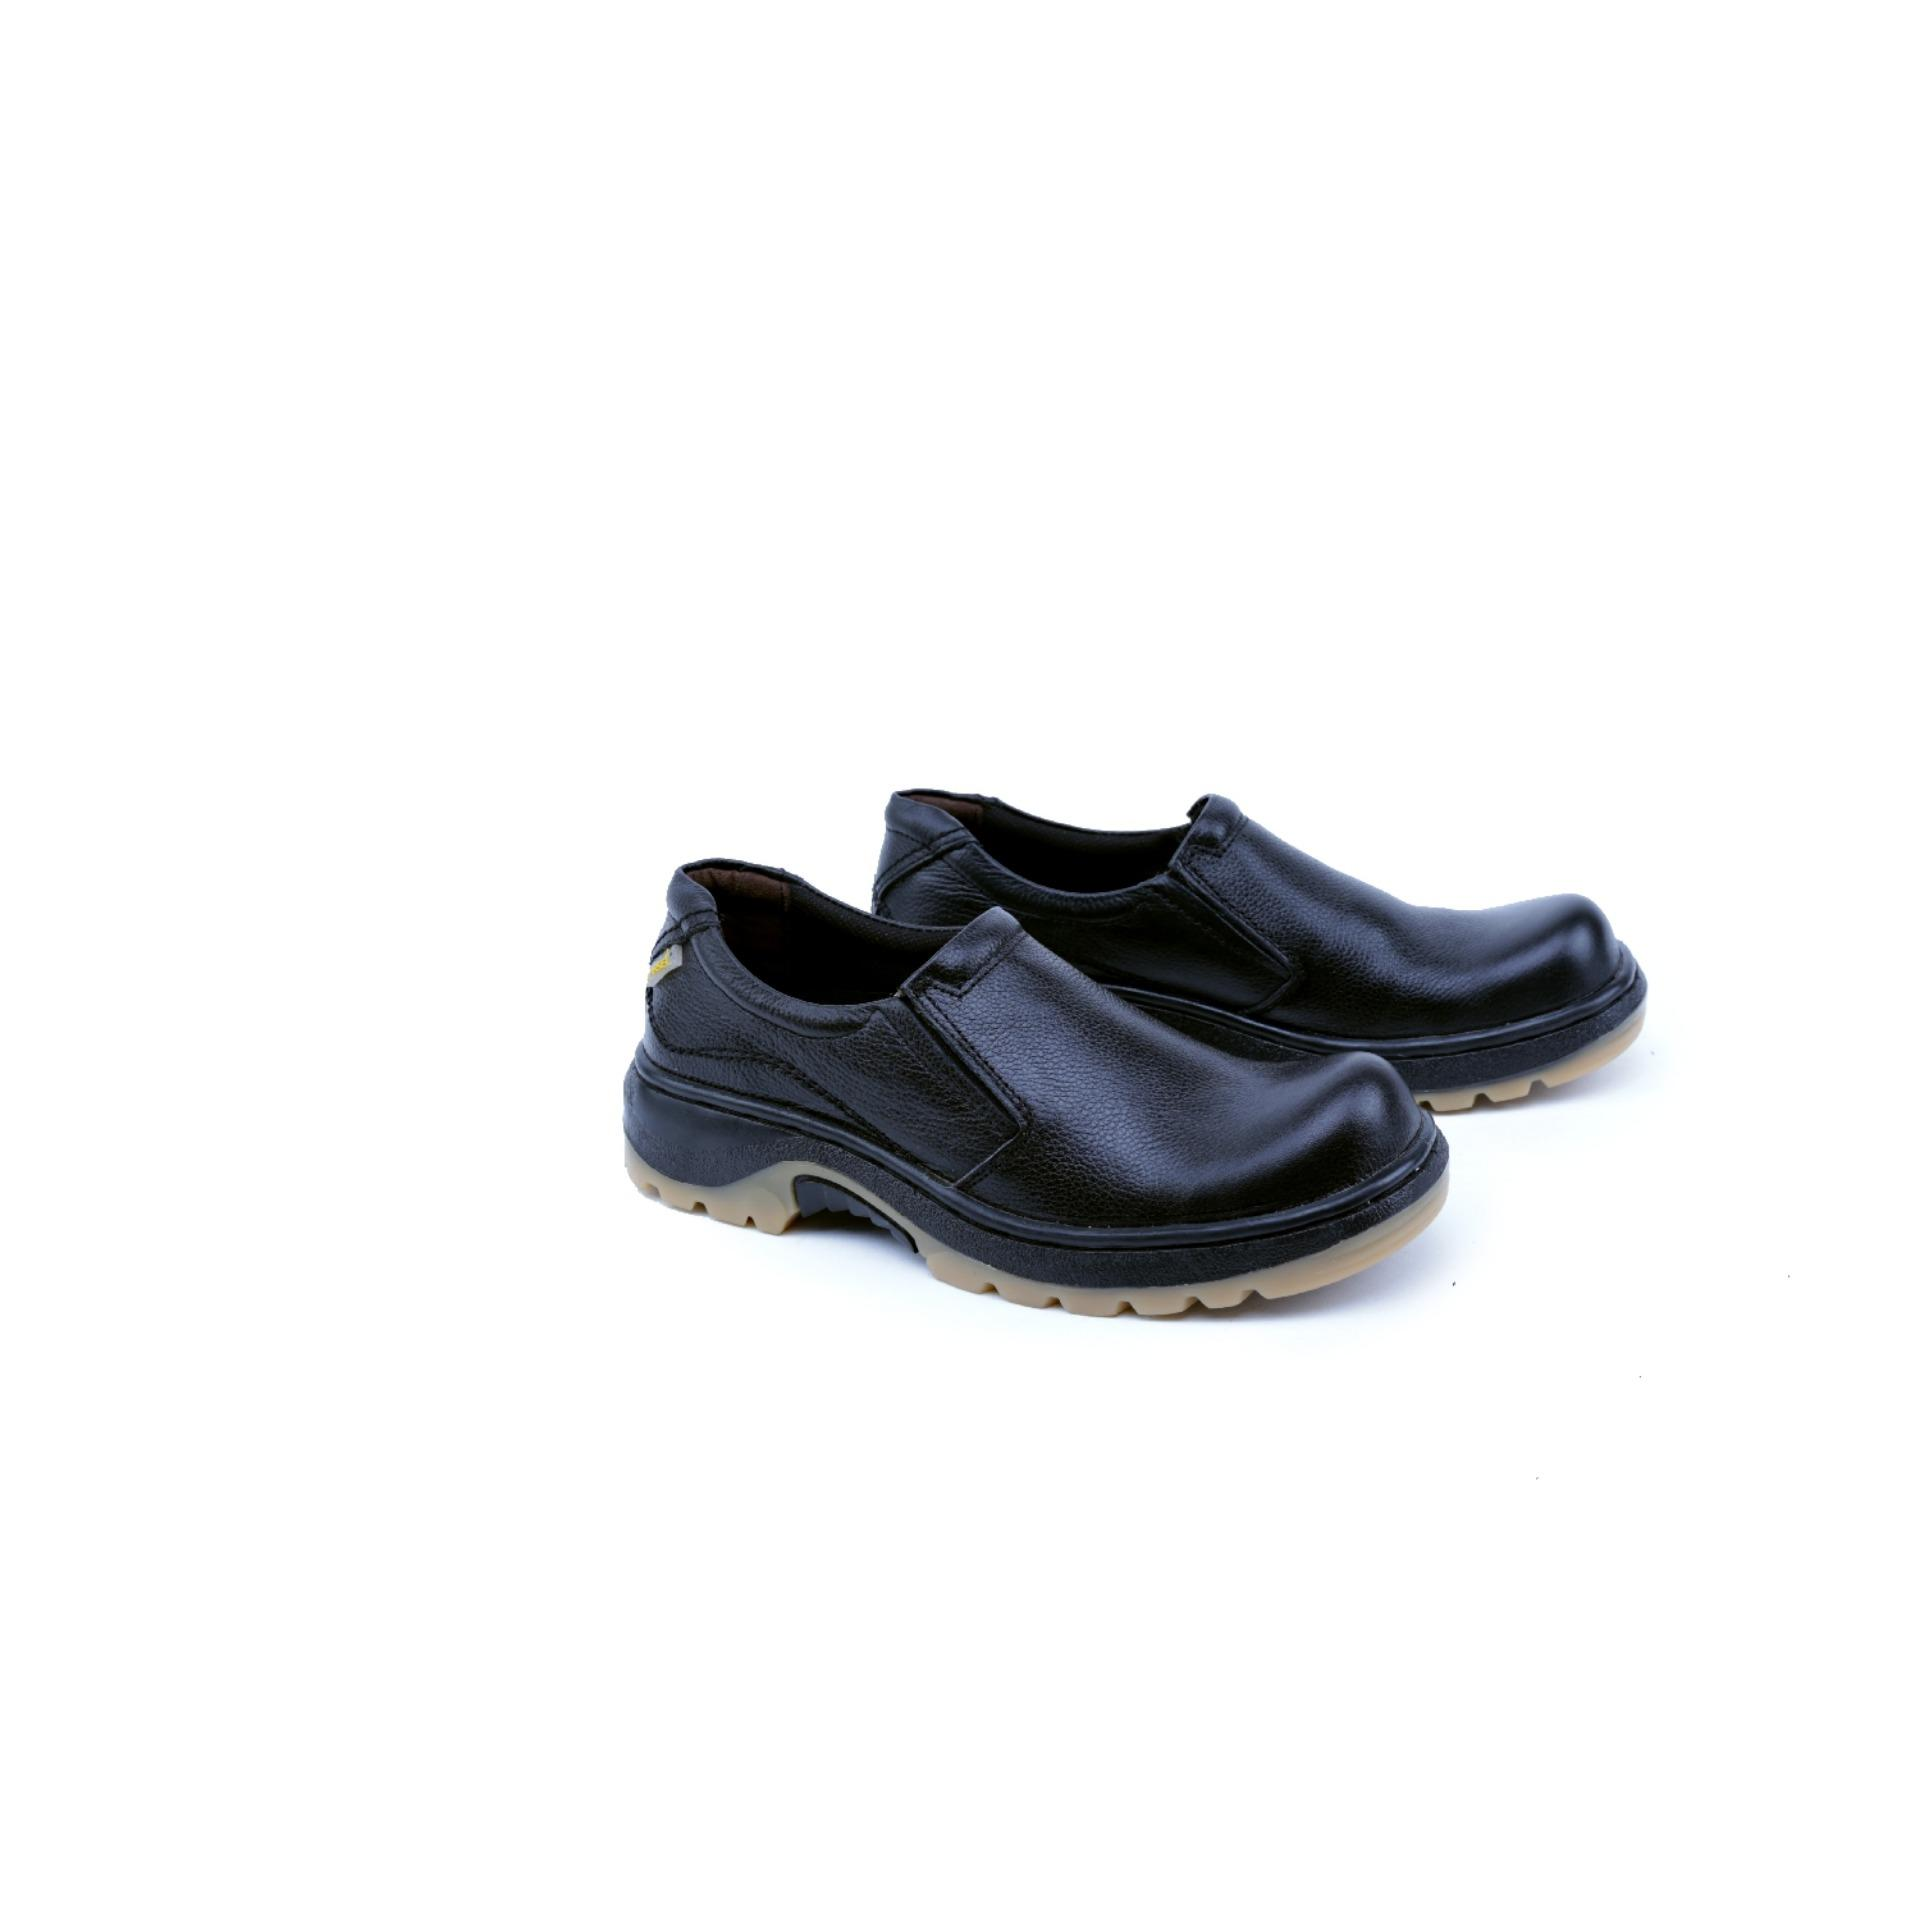 Garsel Shoes GHR 2500 Sepatu Safety Boot Pria-Leather-Tpr - -New Katalog Bagus Kuat(Hitam)